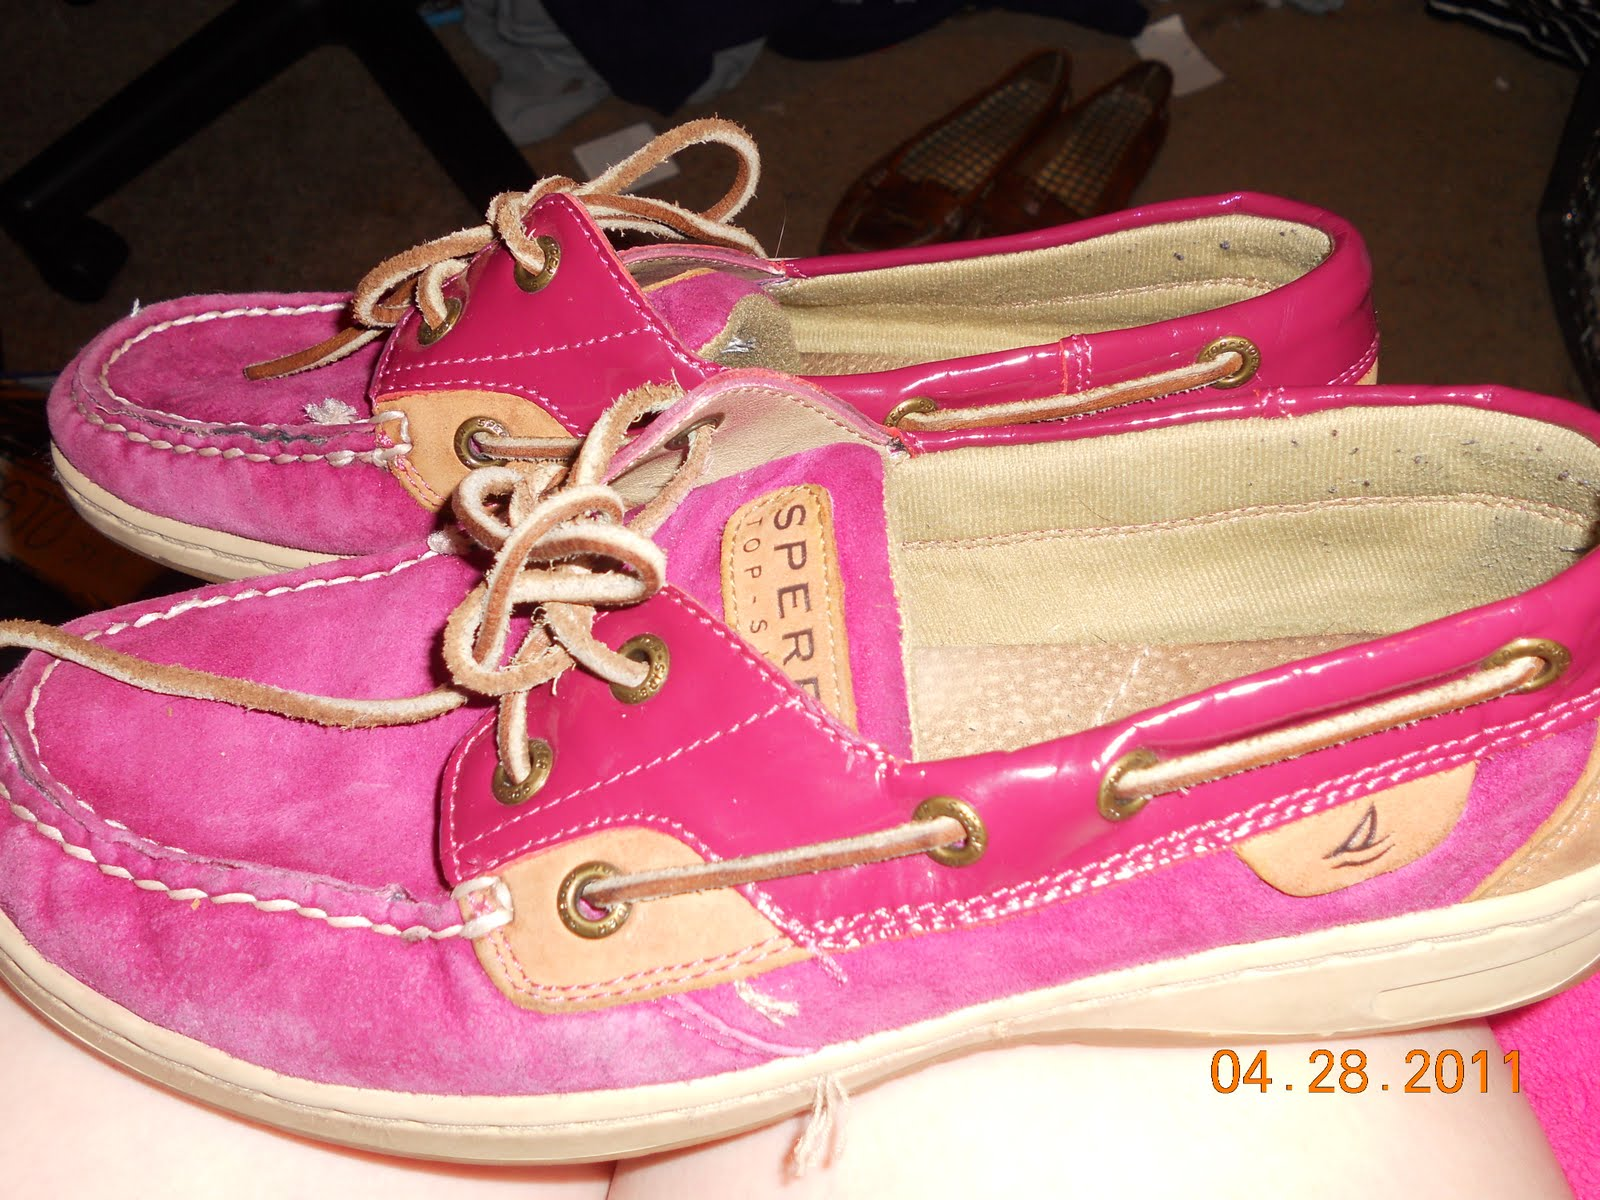 Black Sperry Boat Shoes Boys